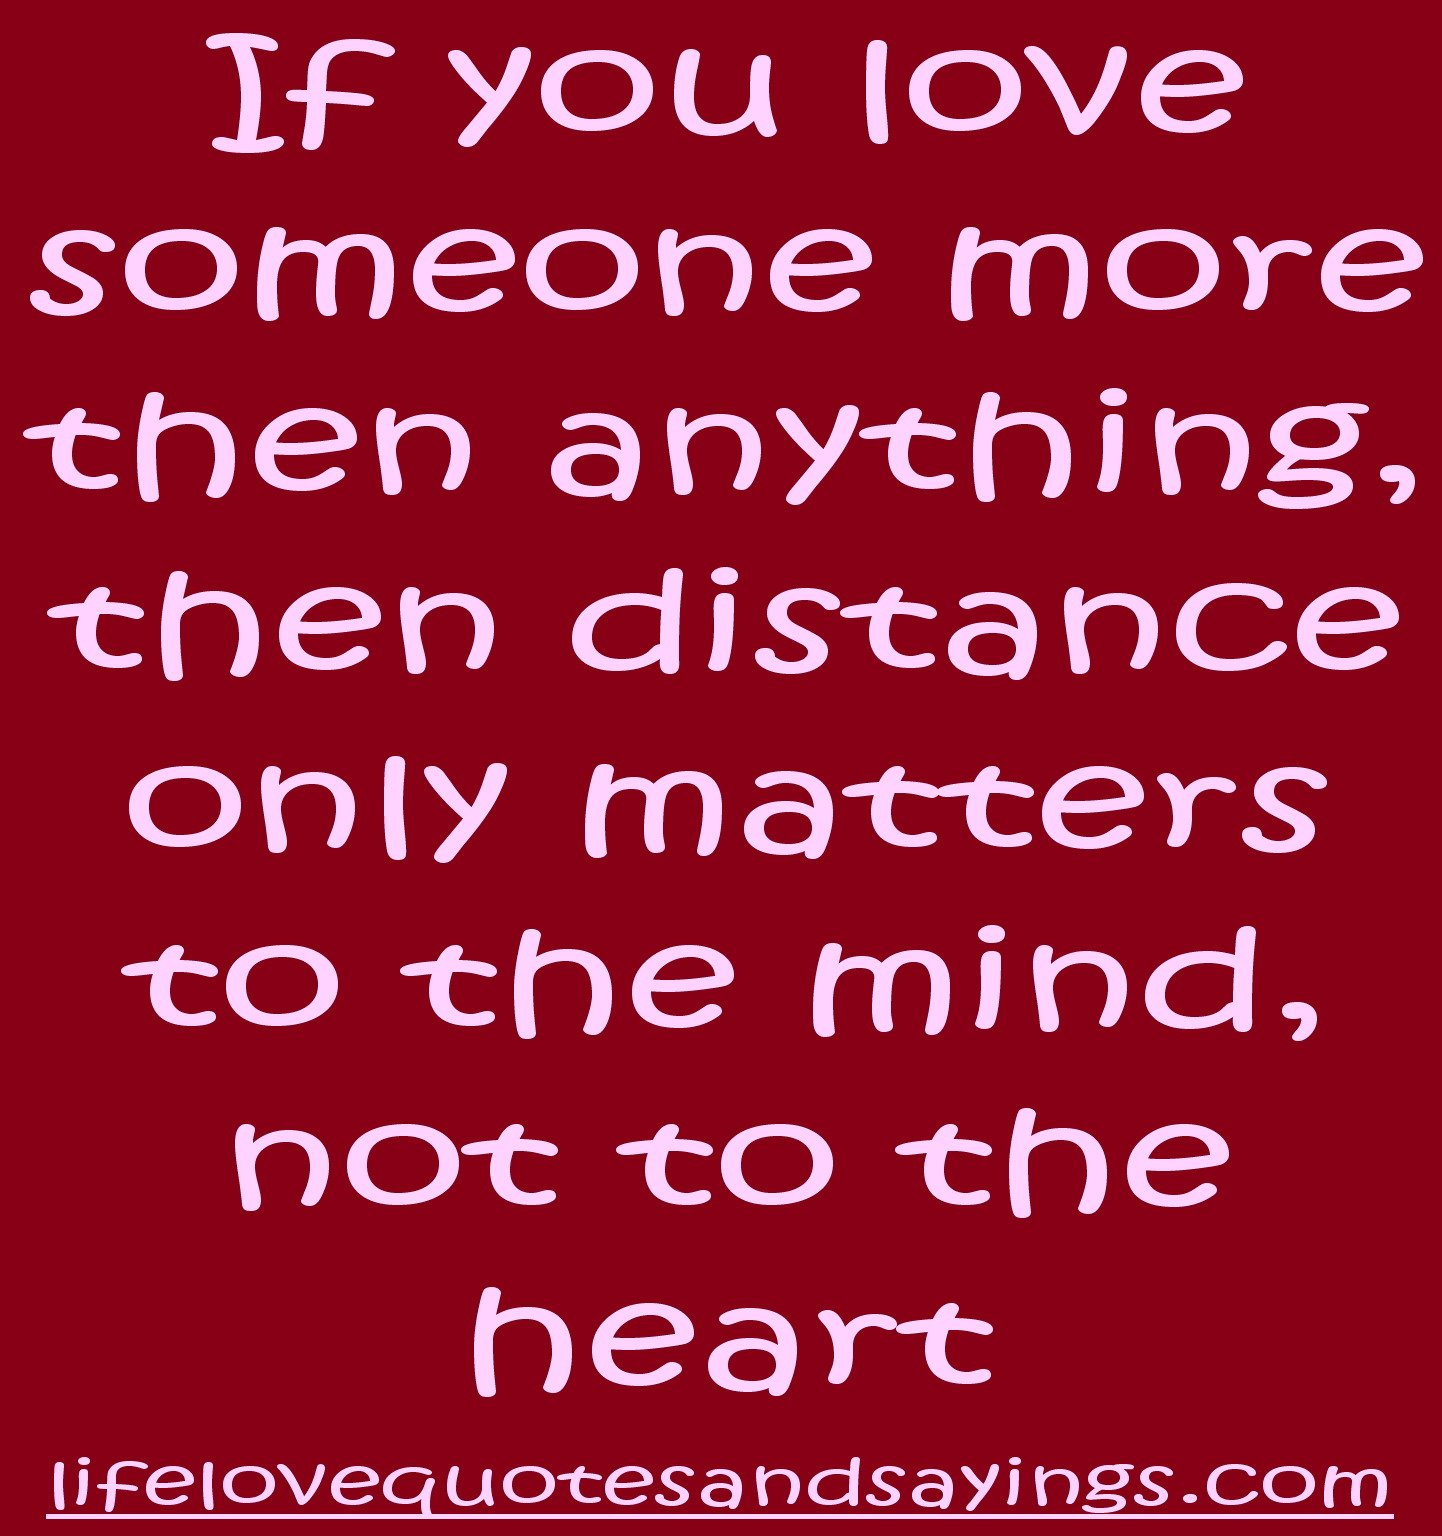 Funny Love Quotes For Her From The Heart Quotesgram: True Heart Quotes. QuotesGram